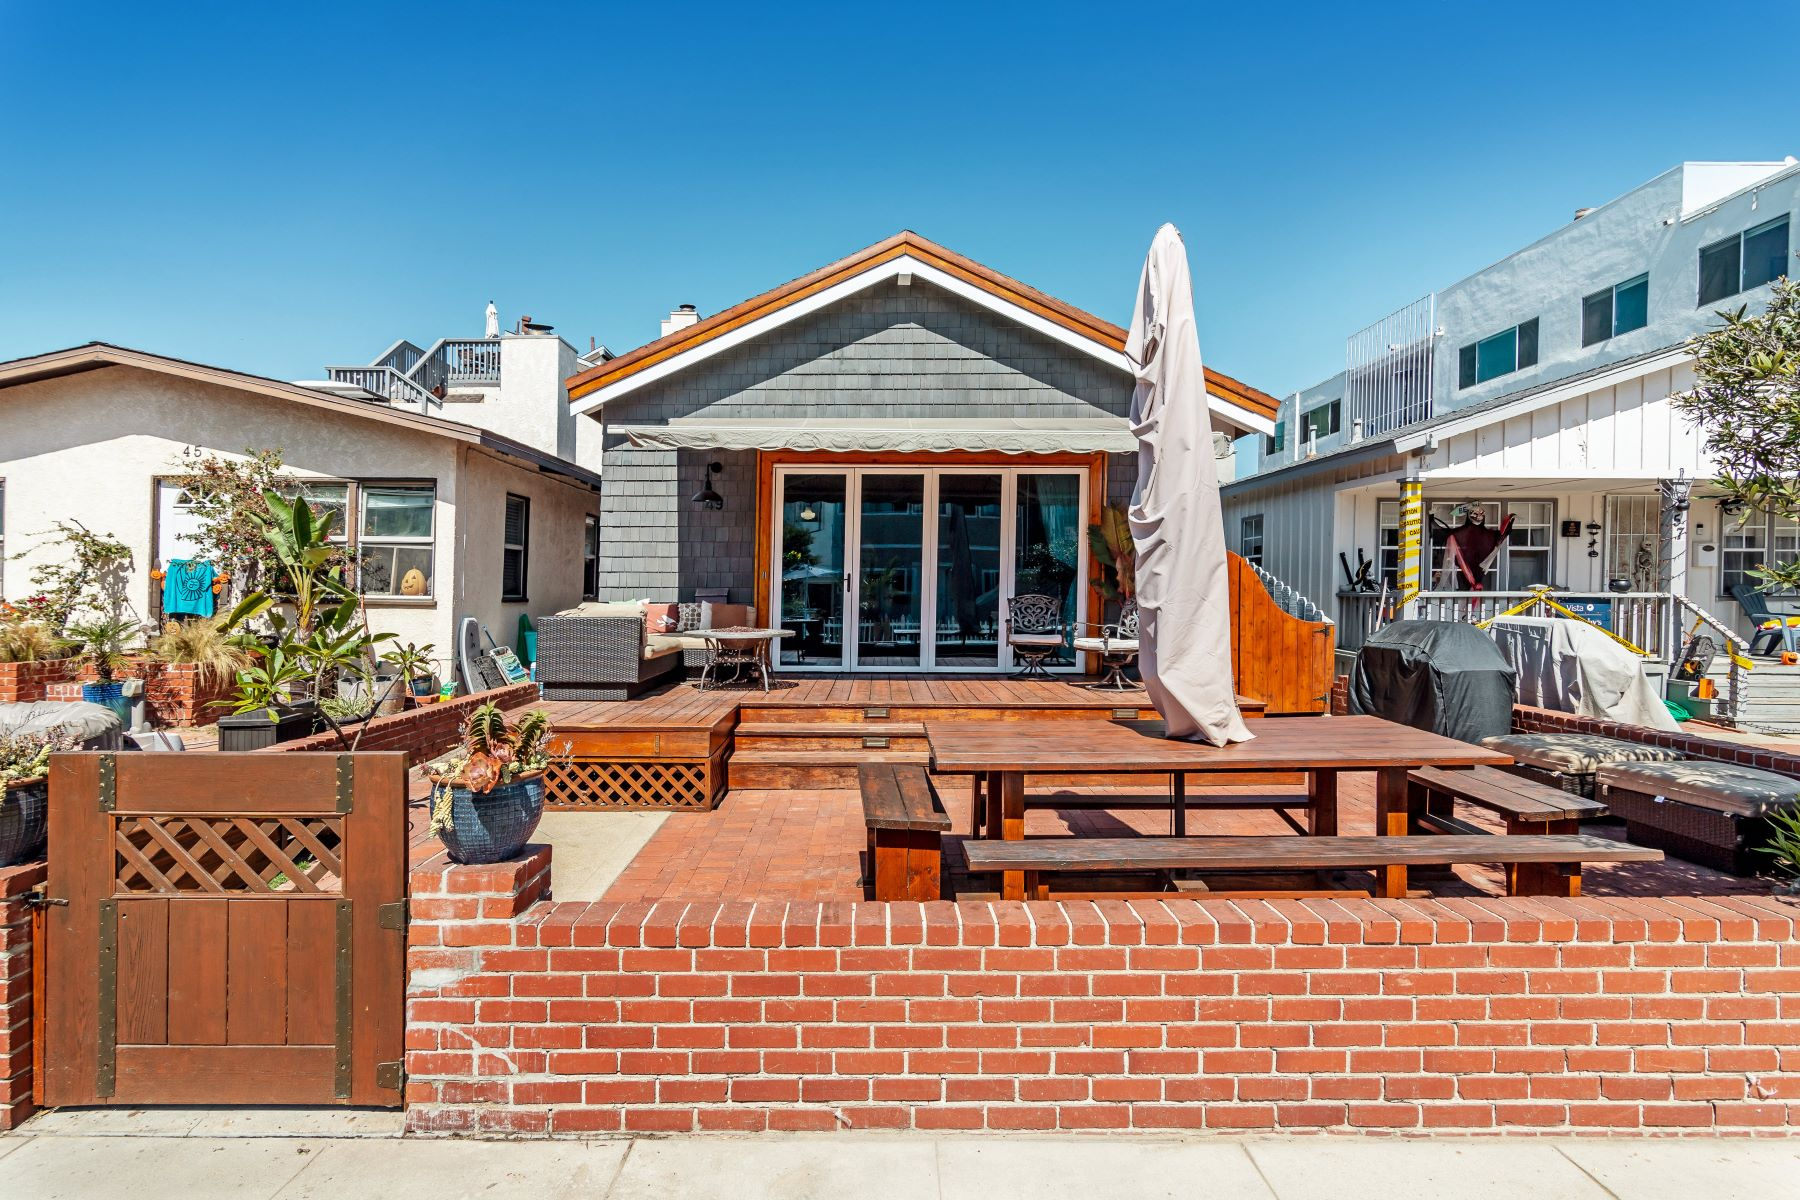 Single Family Homes for Sale at 49 7th Street, Hermosa Beach, CA 90254 49 7th Street Hermosa Beach, California 90254 United States